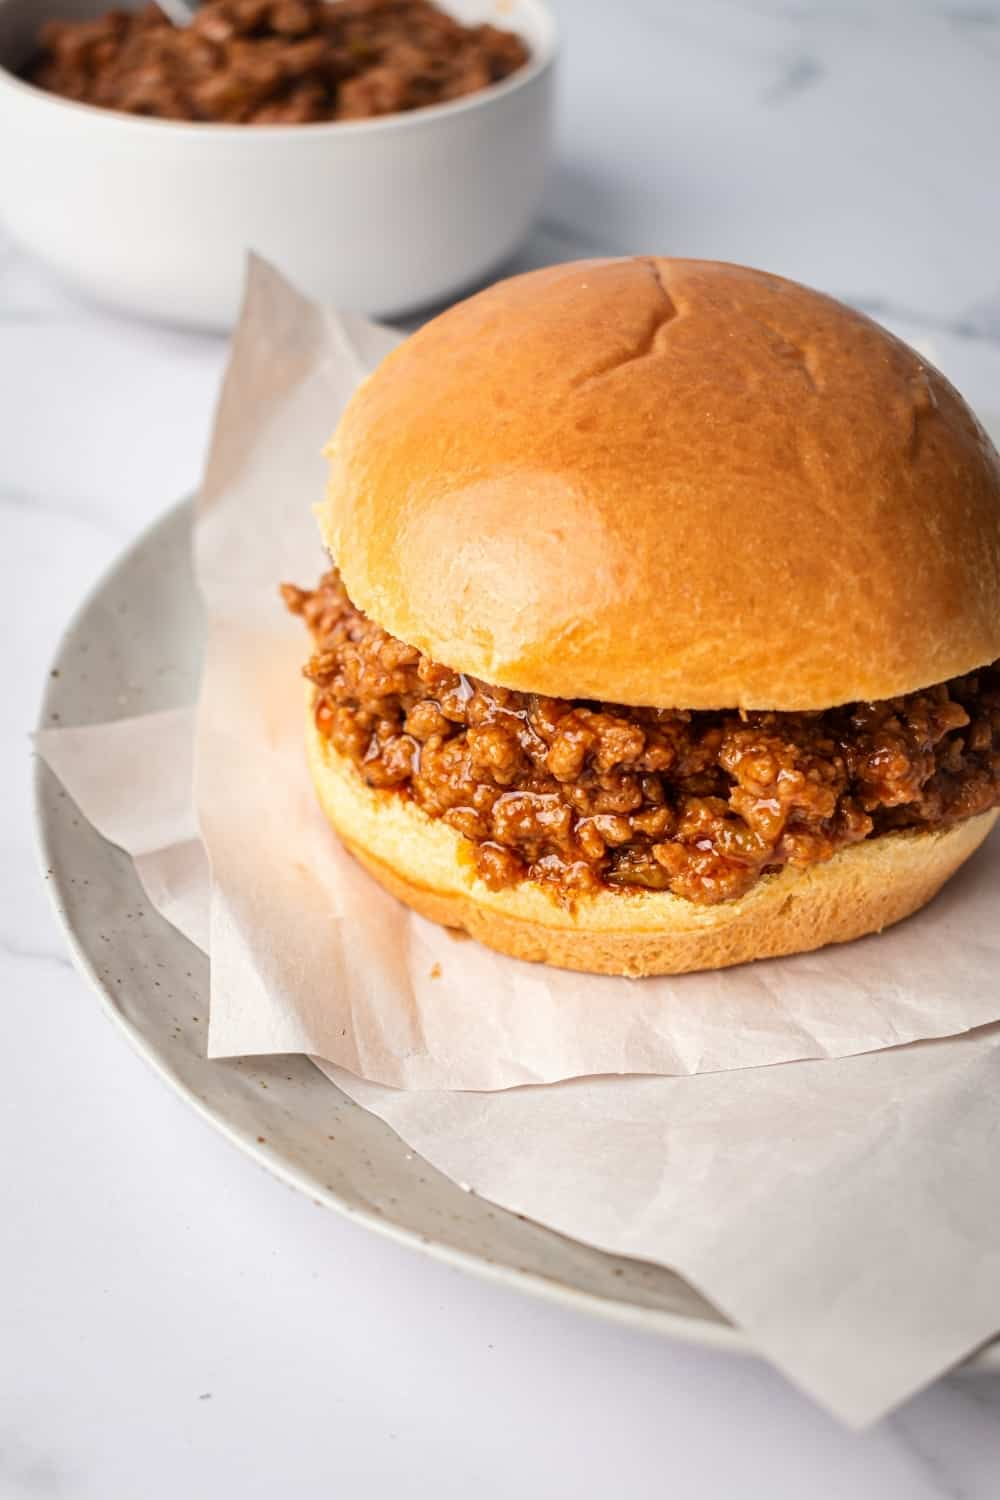 A sloppy Joe on two pieces of parchment paper spread across a gray plate. The plate is on the white counter and behind the plate is part of a white bowl filled the sloppy Joes.